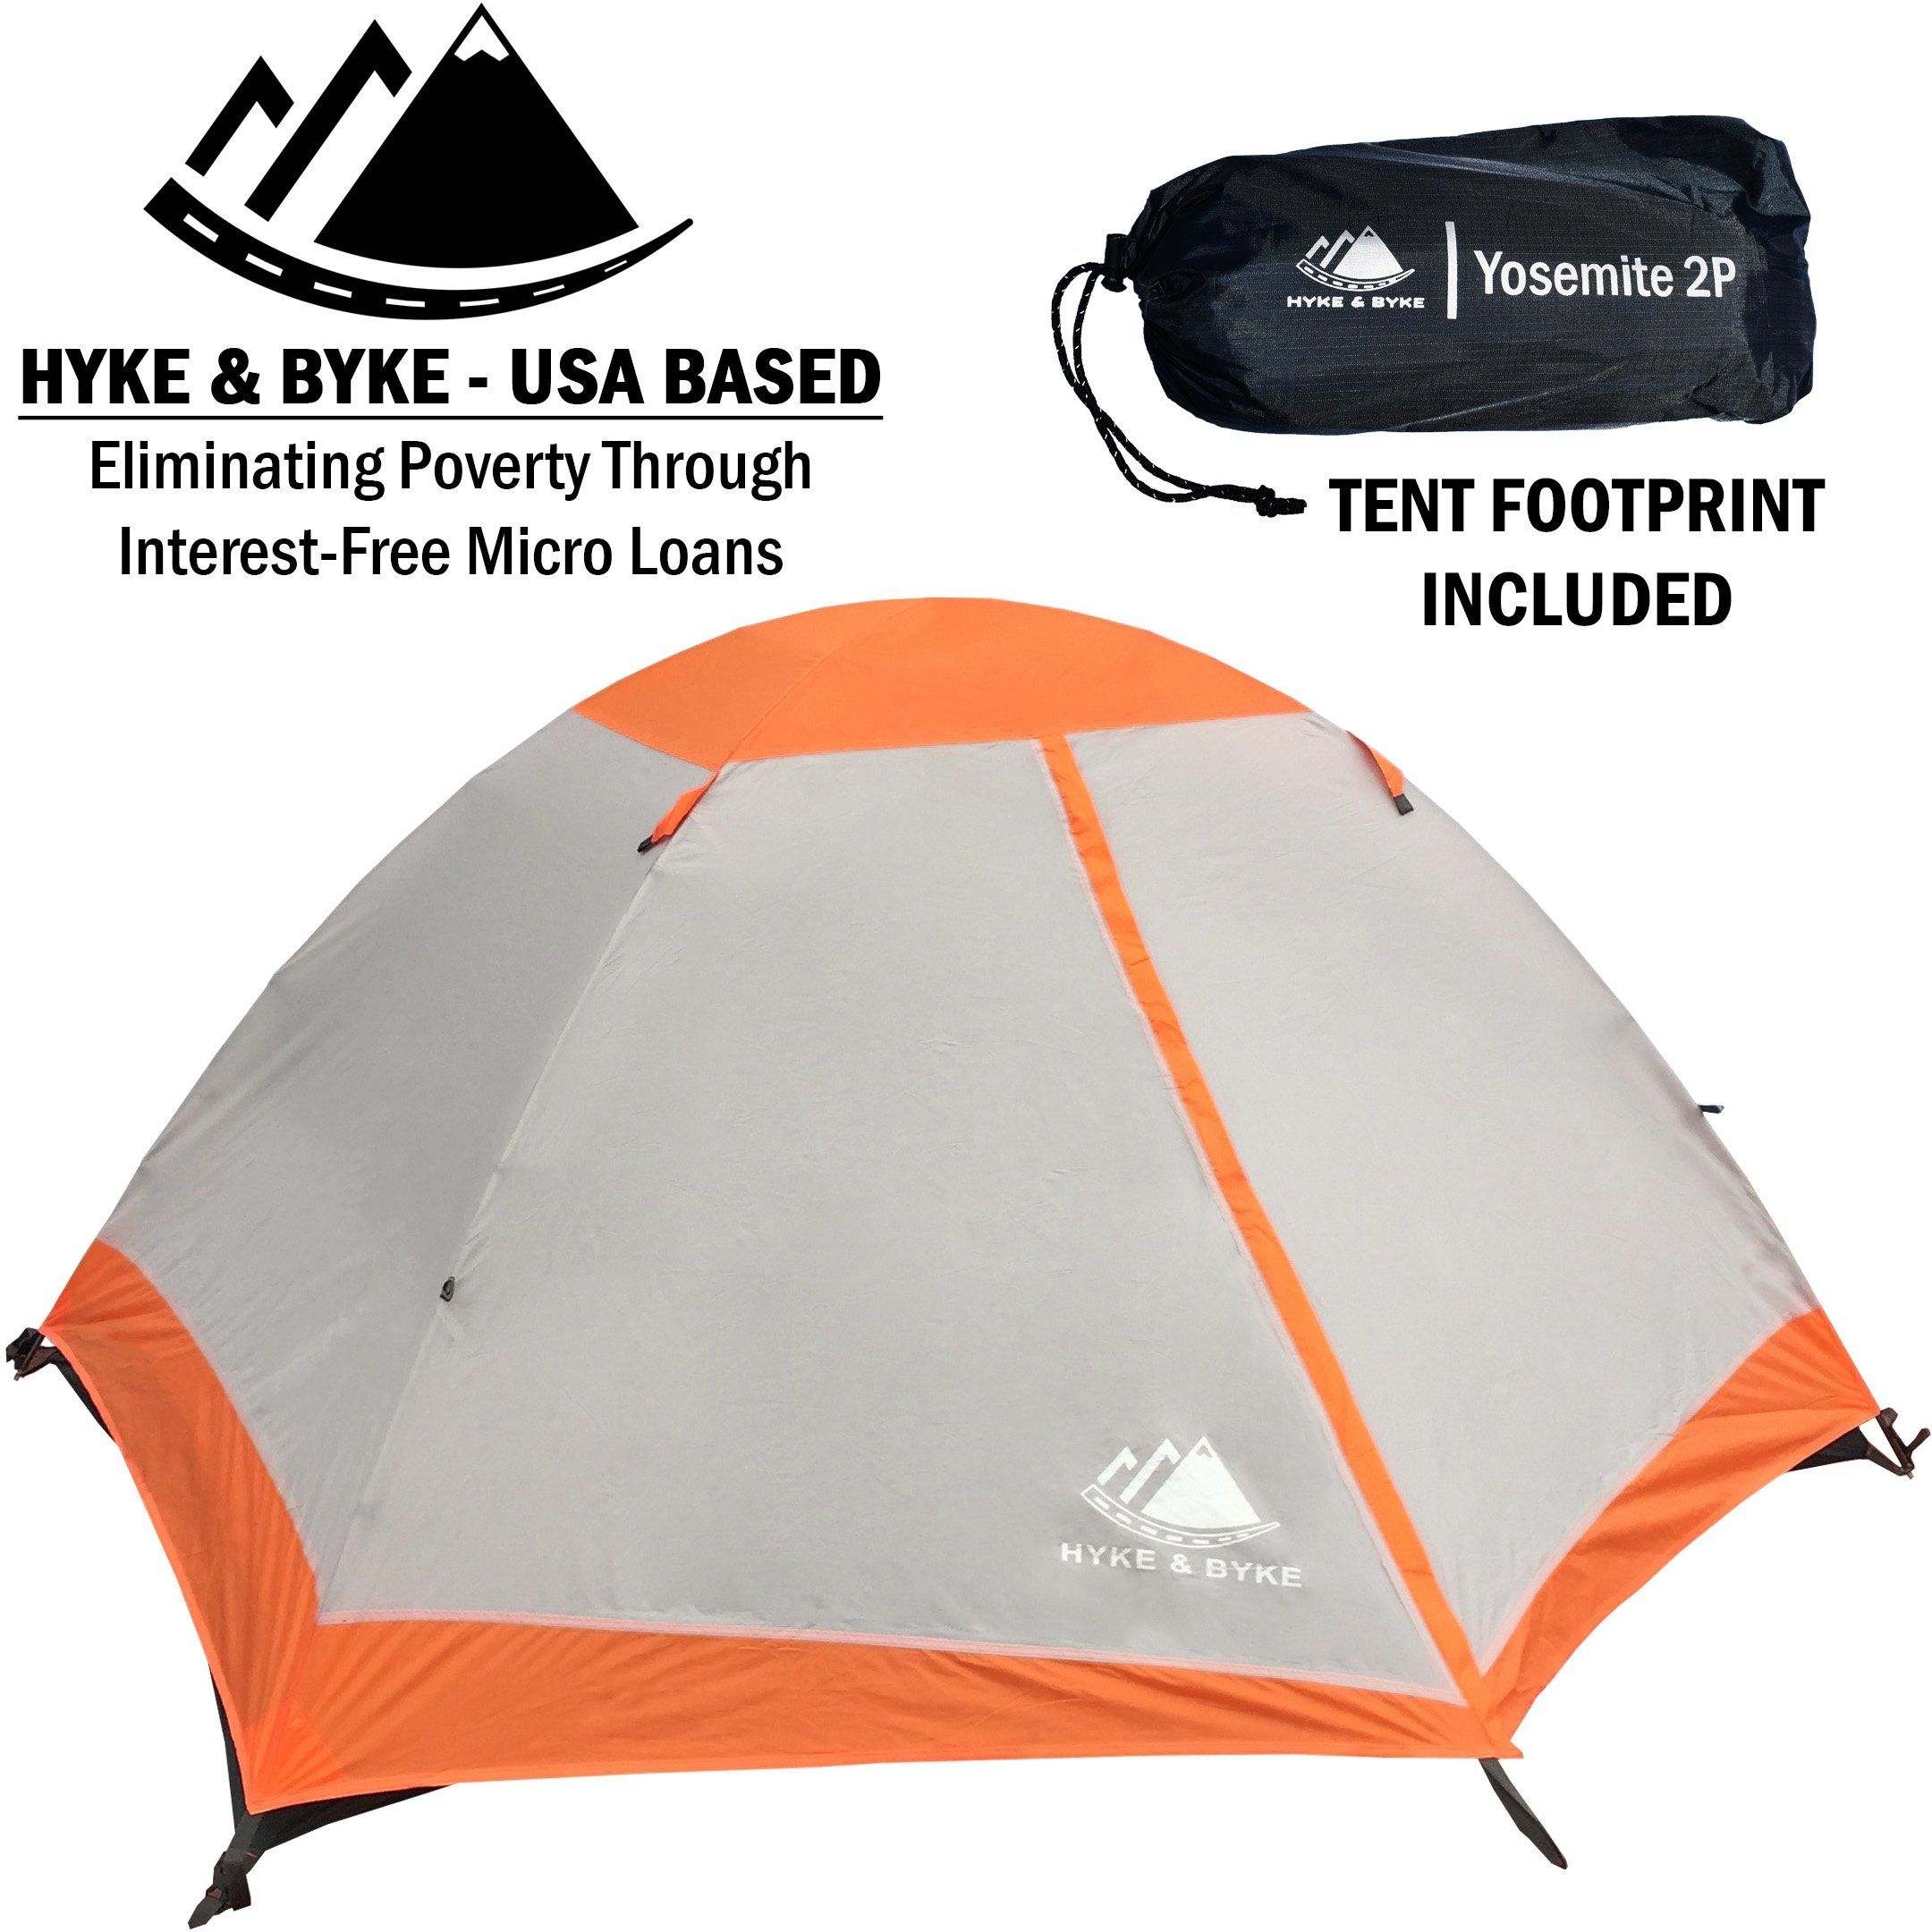 Hyke And Byke 2 Person Backpacking Tent Yosemite 2p 3 Season Tent Two Person Lightweight Design For Backpacking Bike P Backpacking Tent Tent Camping And Hiking